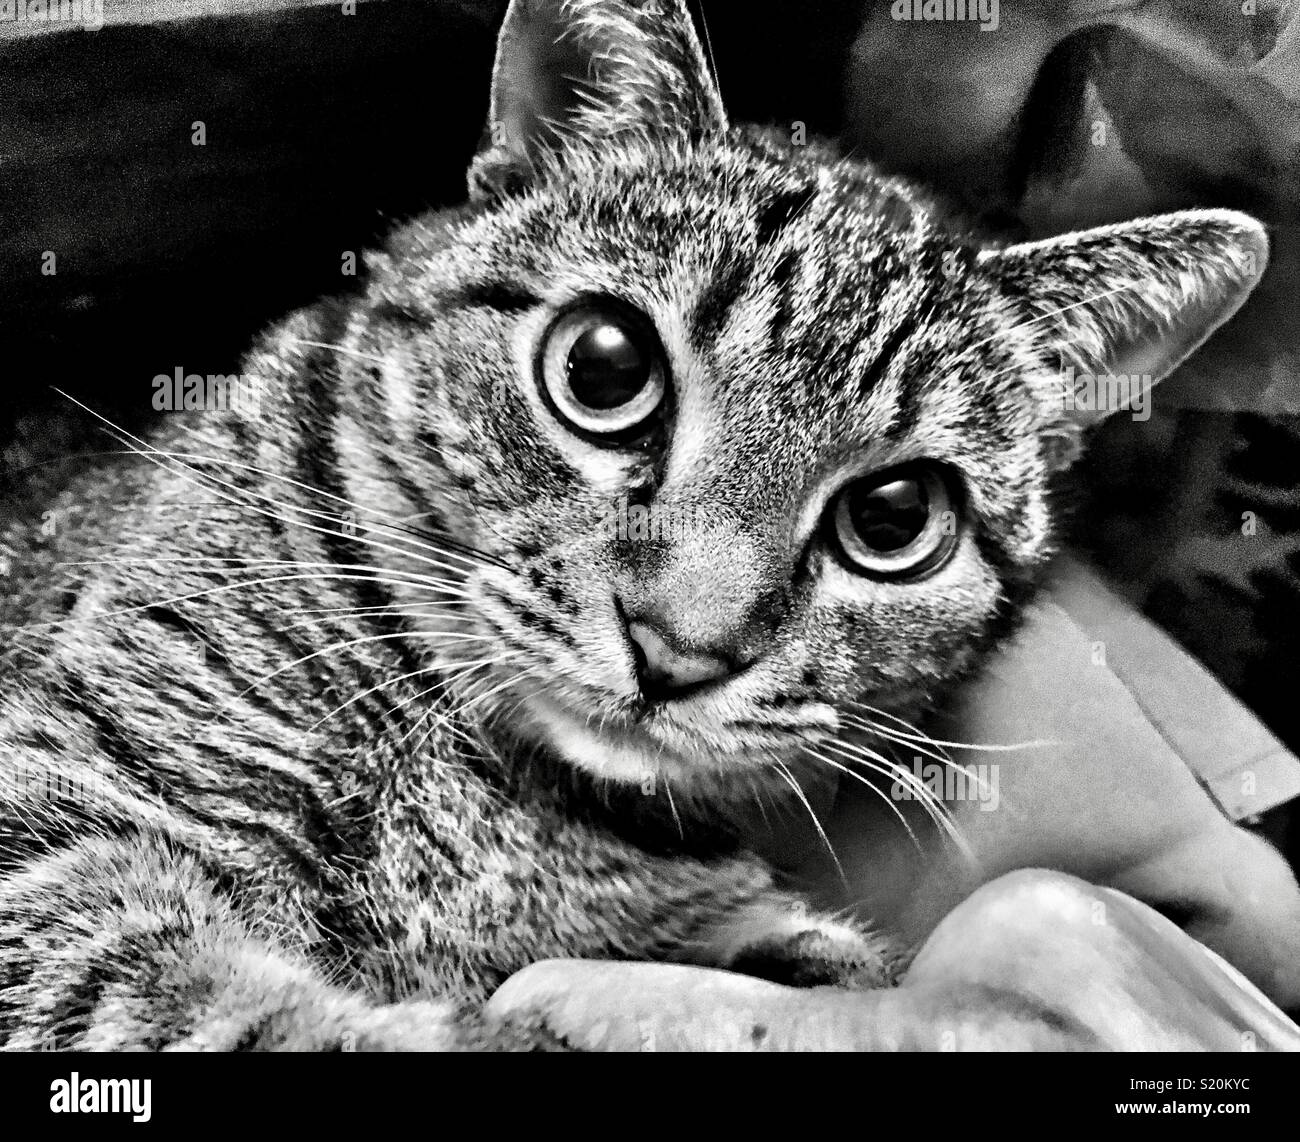 Wide-eyed cat holding owner's hand - Stock Image